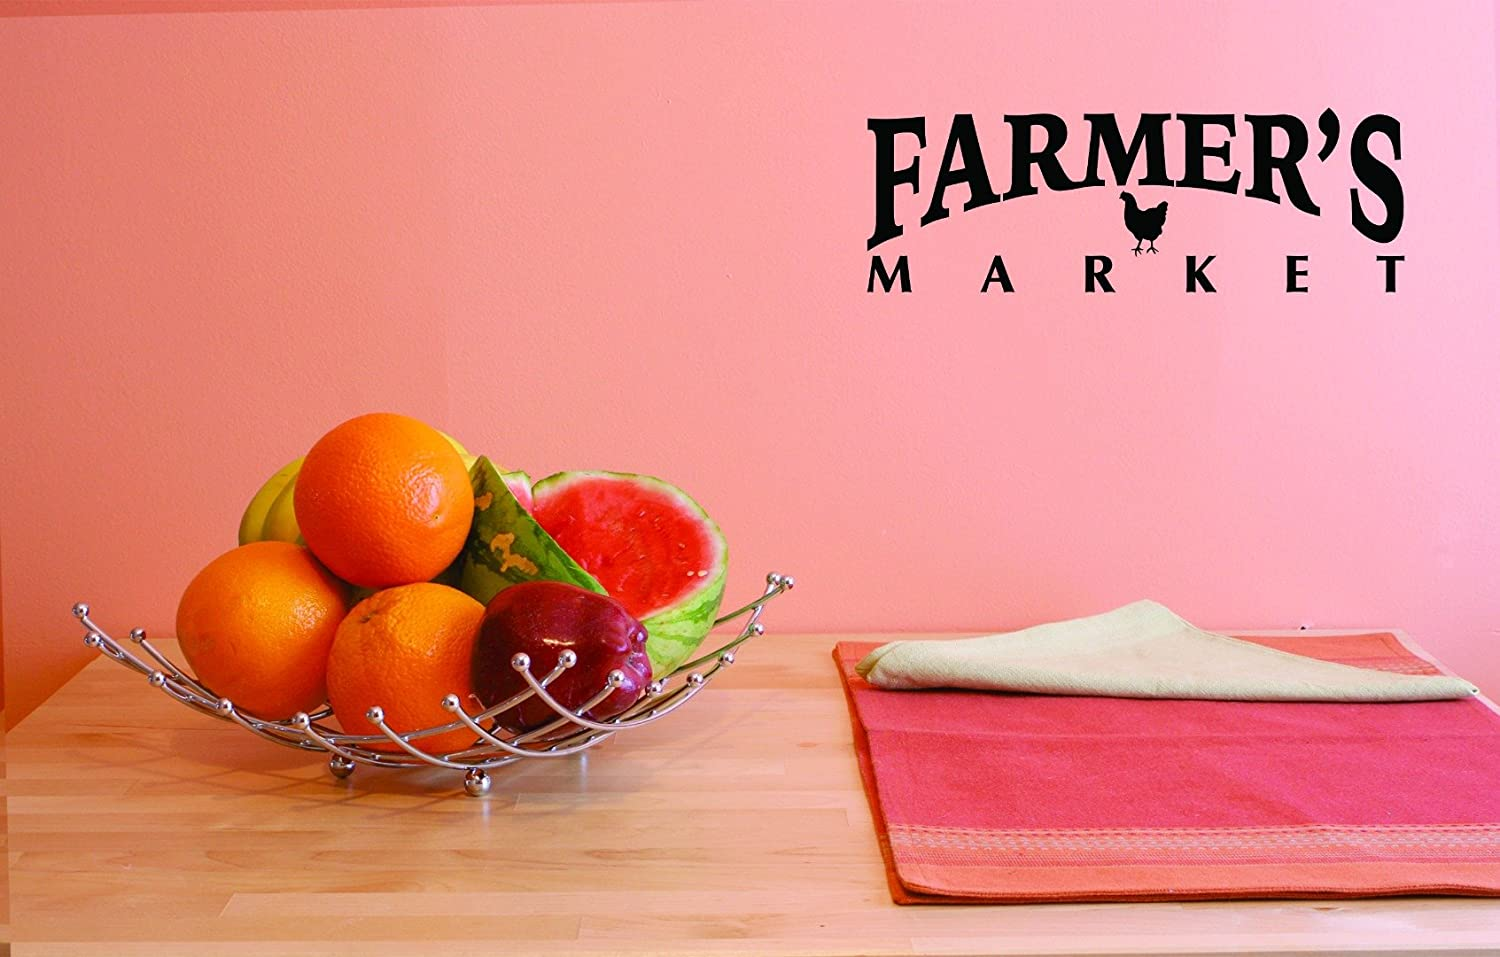 Design with Vinyl JER 1767 1 Hot New Decals Farmers Market Wall Art Size 10 Inches x 20 Inches Color Black 10 x 20